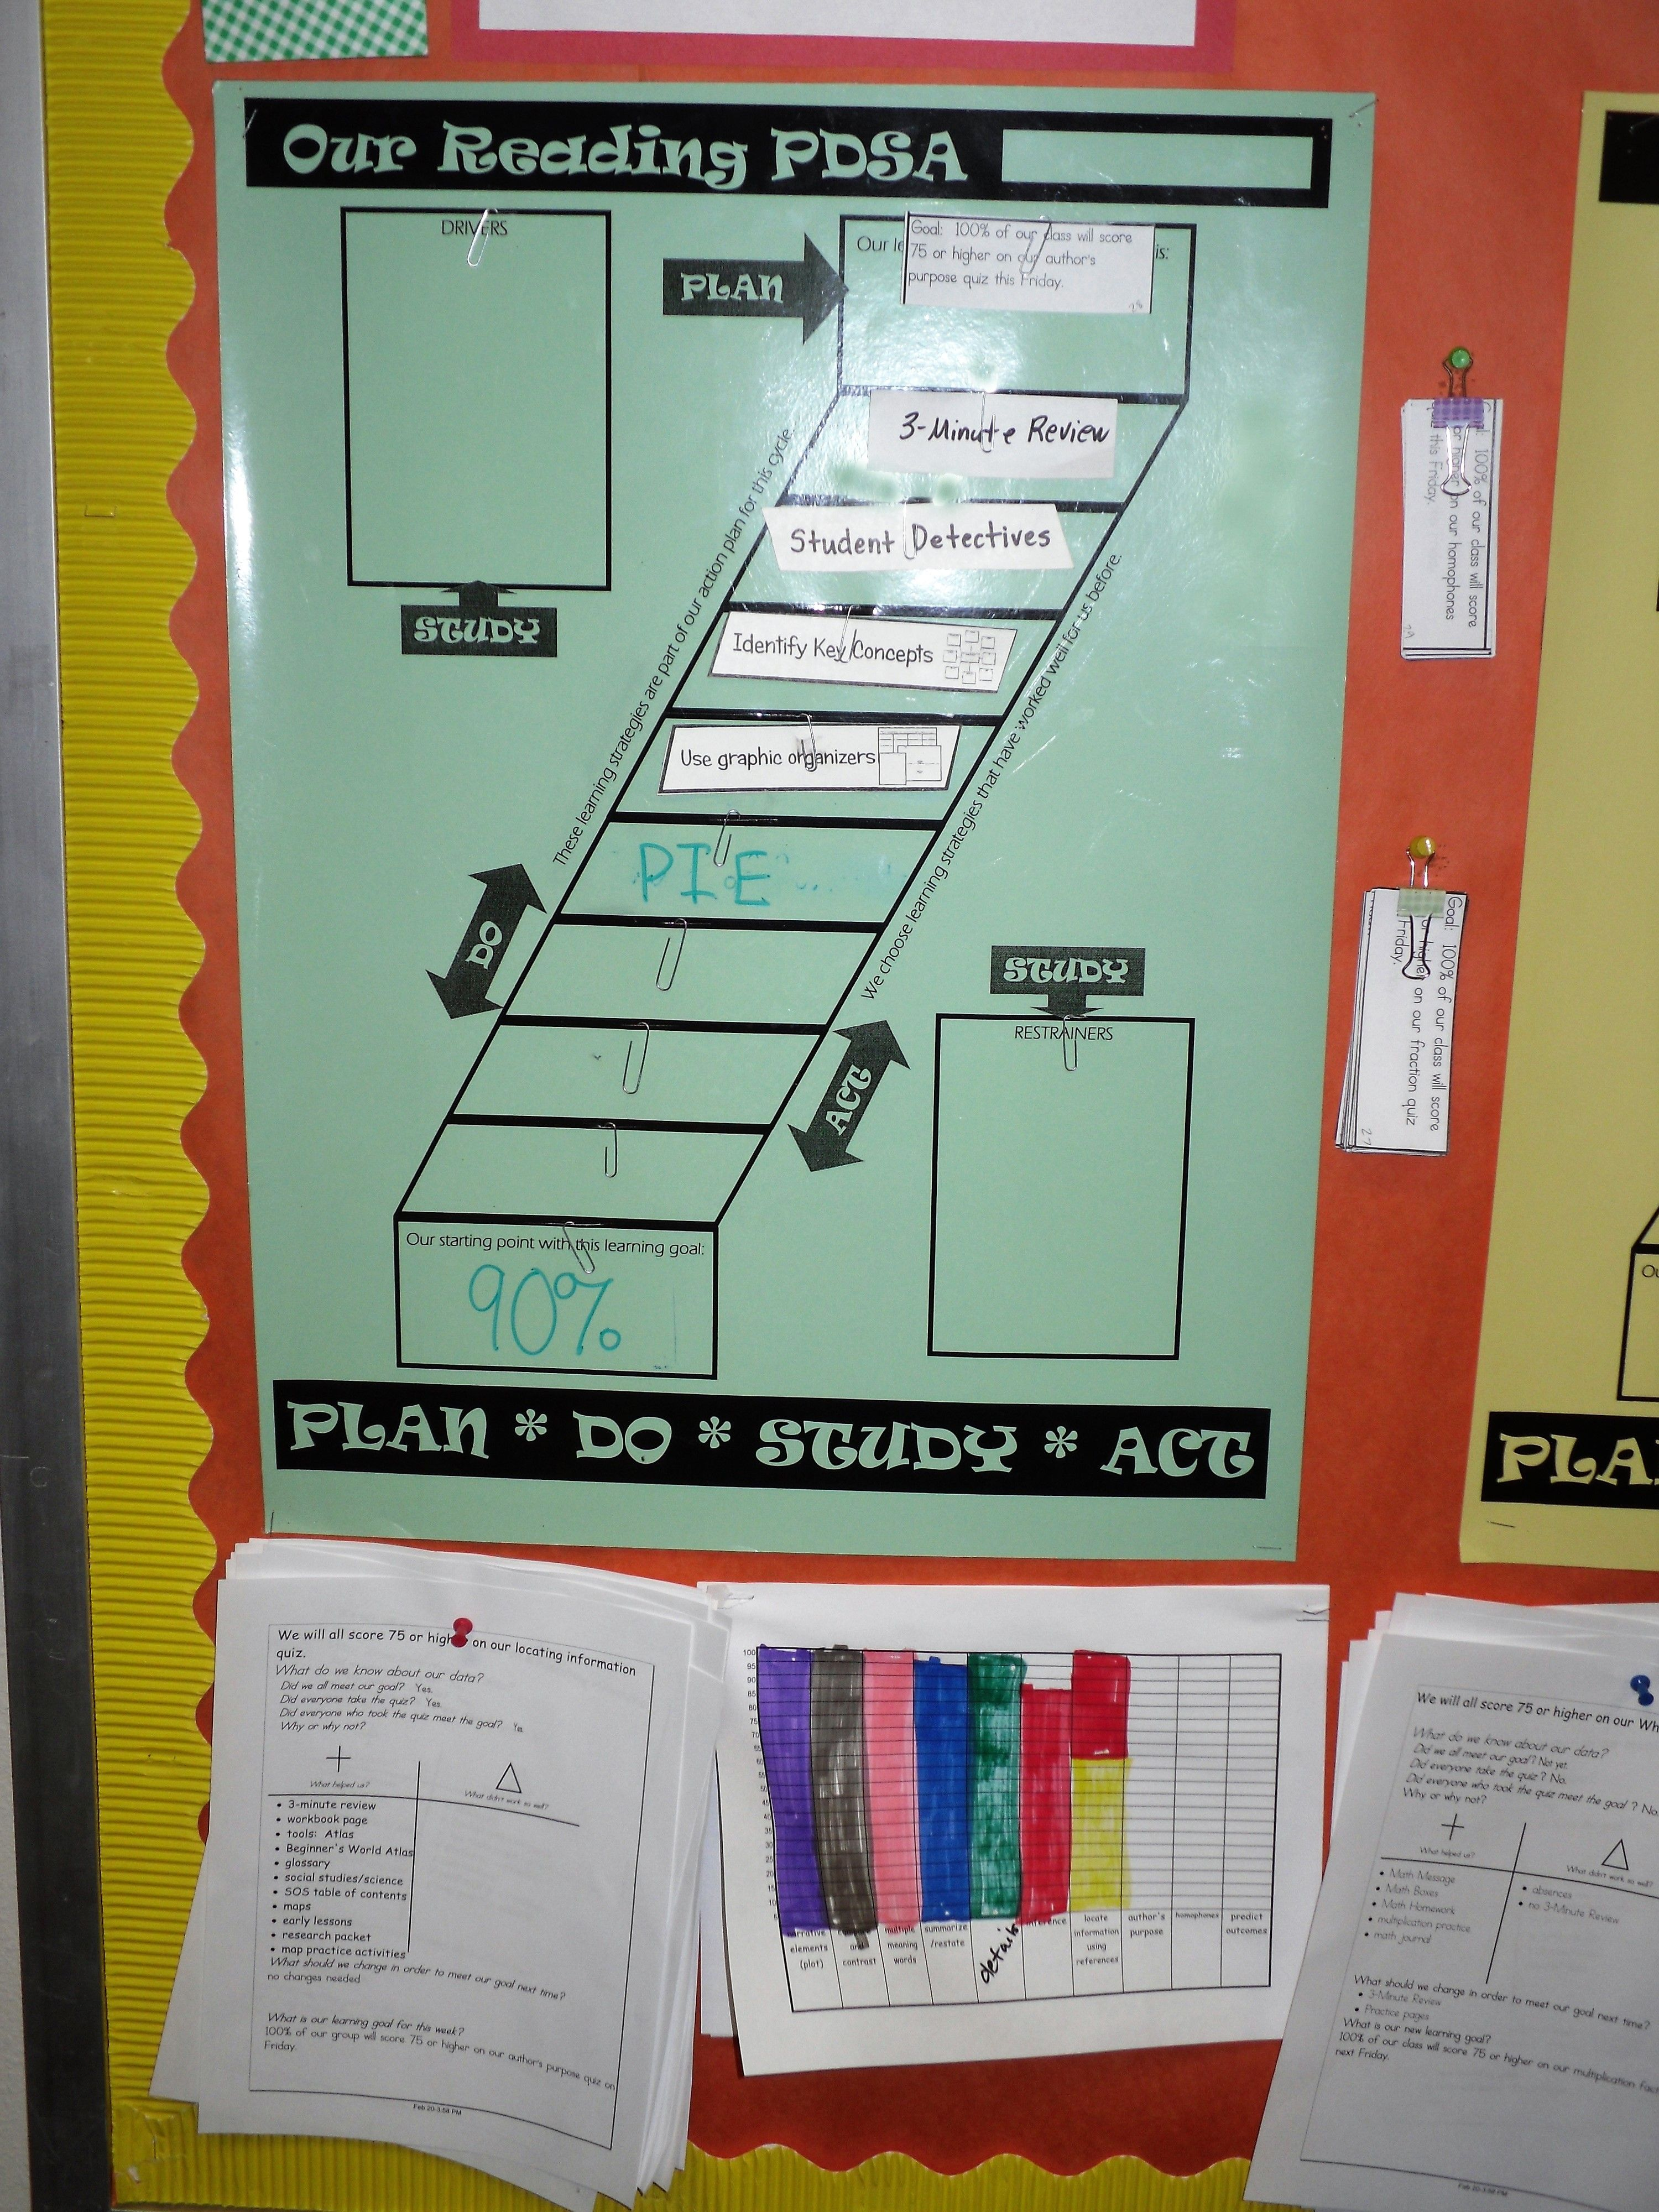 hight resolution of the ladder diagram is used to support a weekly pdsa cycle for a reading learning goal the teacher adds the strategies to the steps on the ladder to show